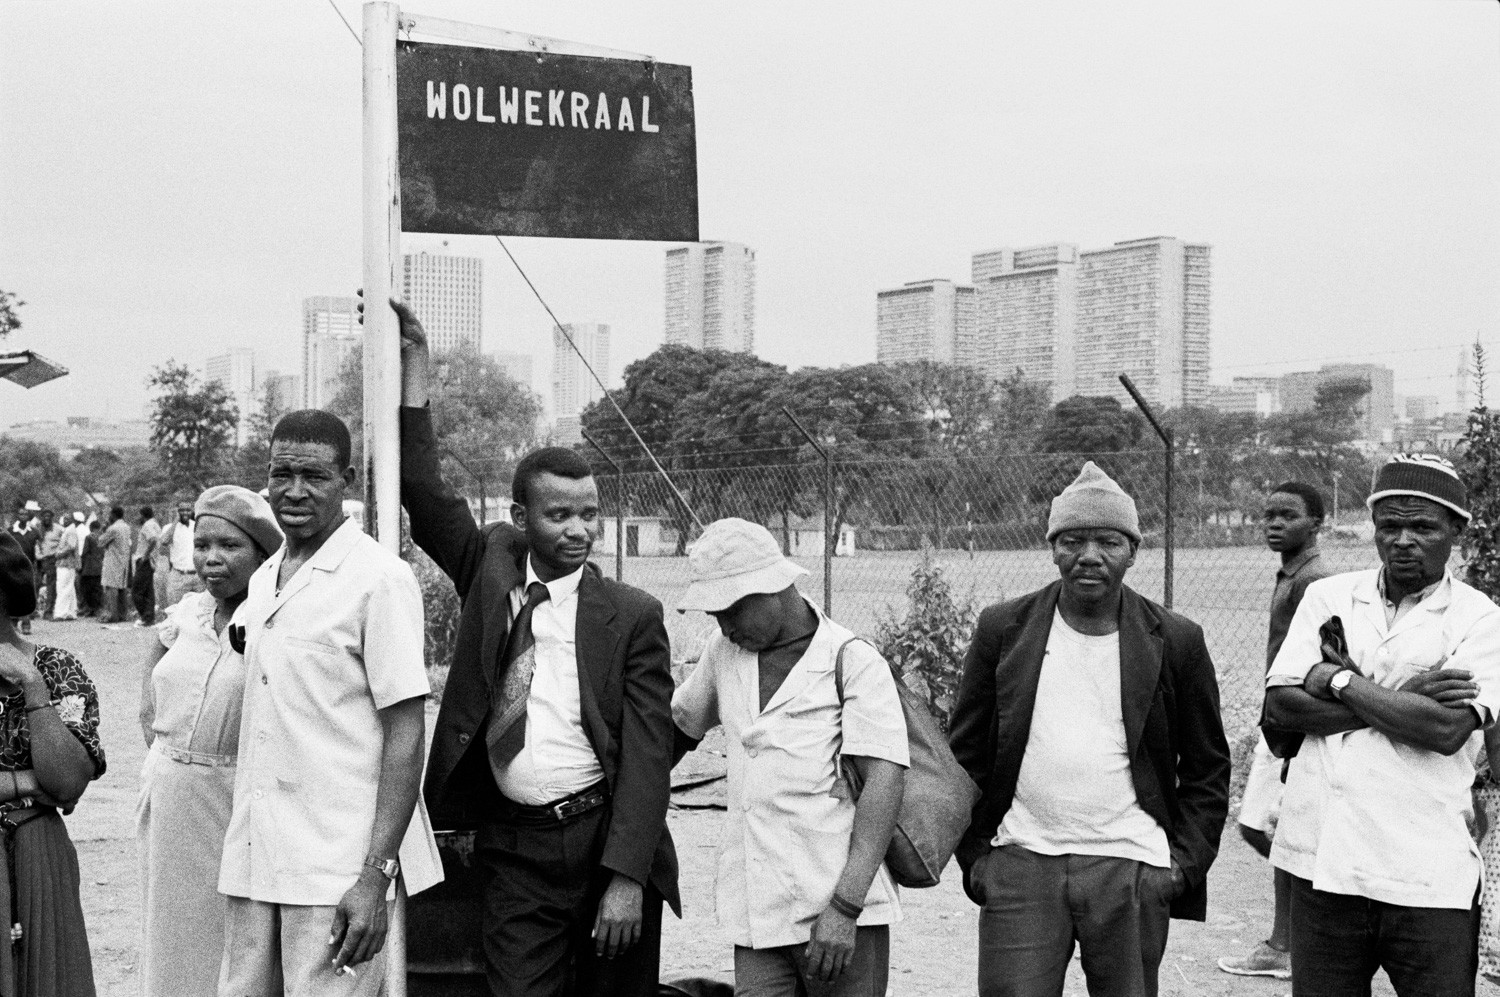 David Goldblatt, 4:00 pm. Going home: In the afternoon at Marabastad terminal in Pretoria, commuters start lining up for buses to take them back home to KwaNdebele. The last bus to Wolwekraal will leave at 7:00 pm and reach its terminal in KwaNdebele at about 10:00pm, 1983